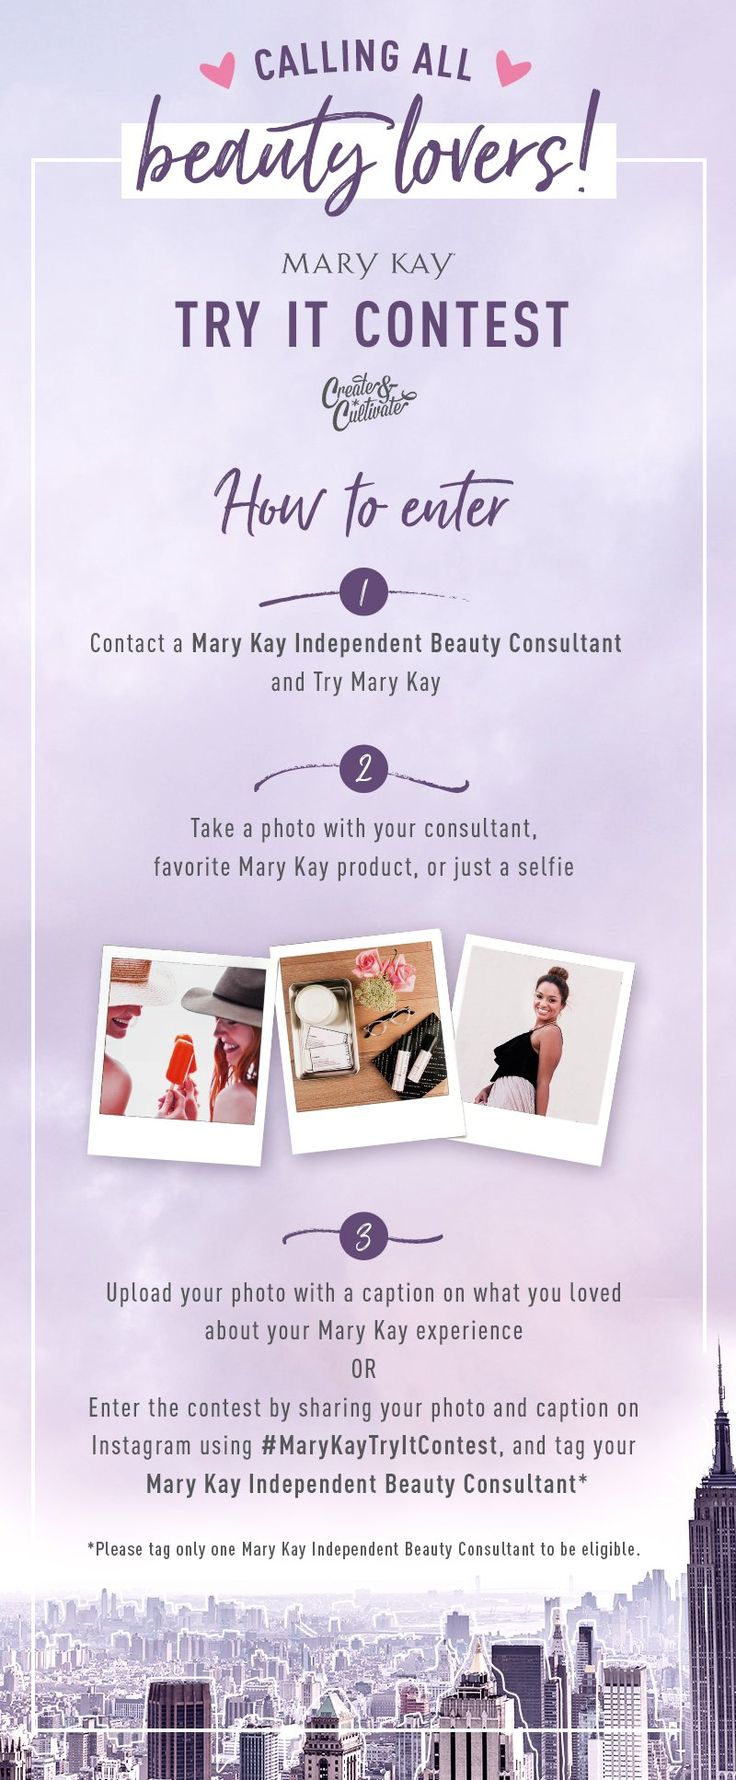 Calling all beauty lovers! You could win a fabulous trip for two to New York just by using your favorite Mary Kay products. Learn more about this Instagram contest and view rules at www.marykay.com/tryitcontest.